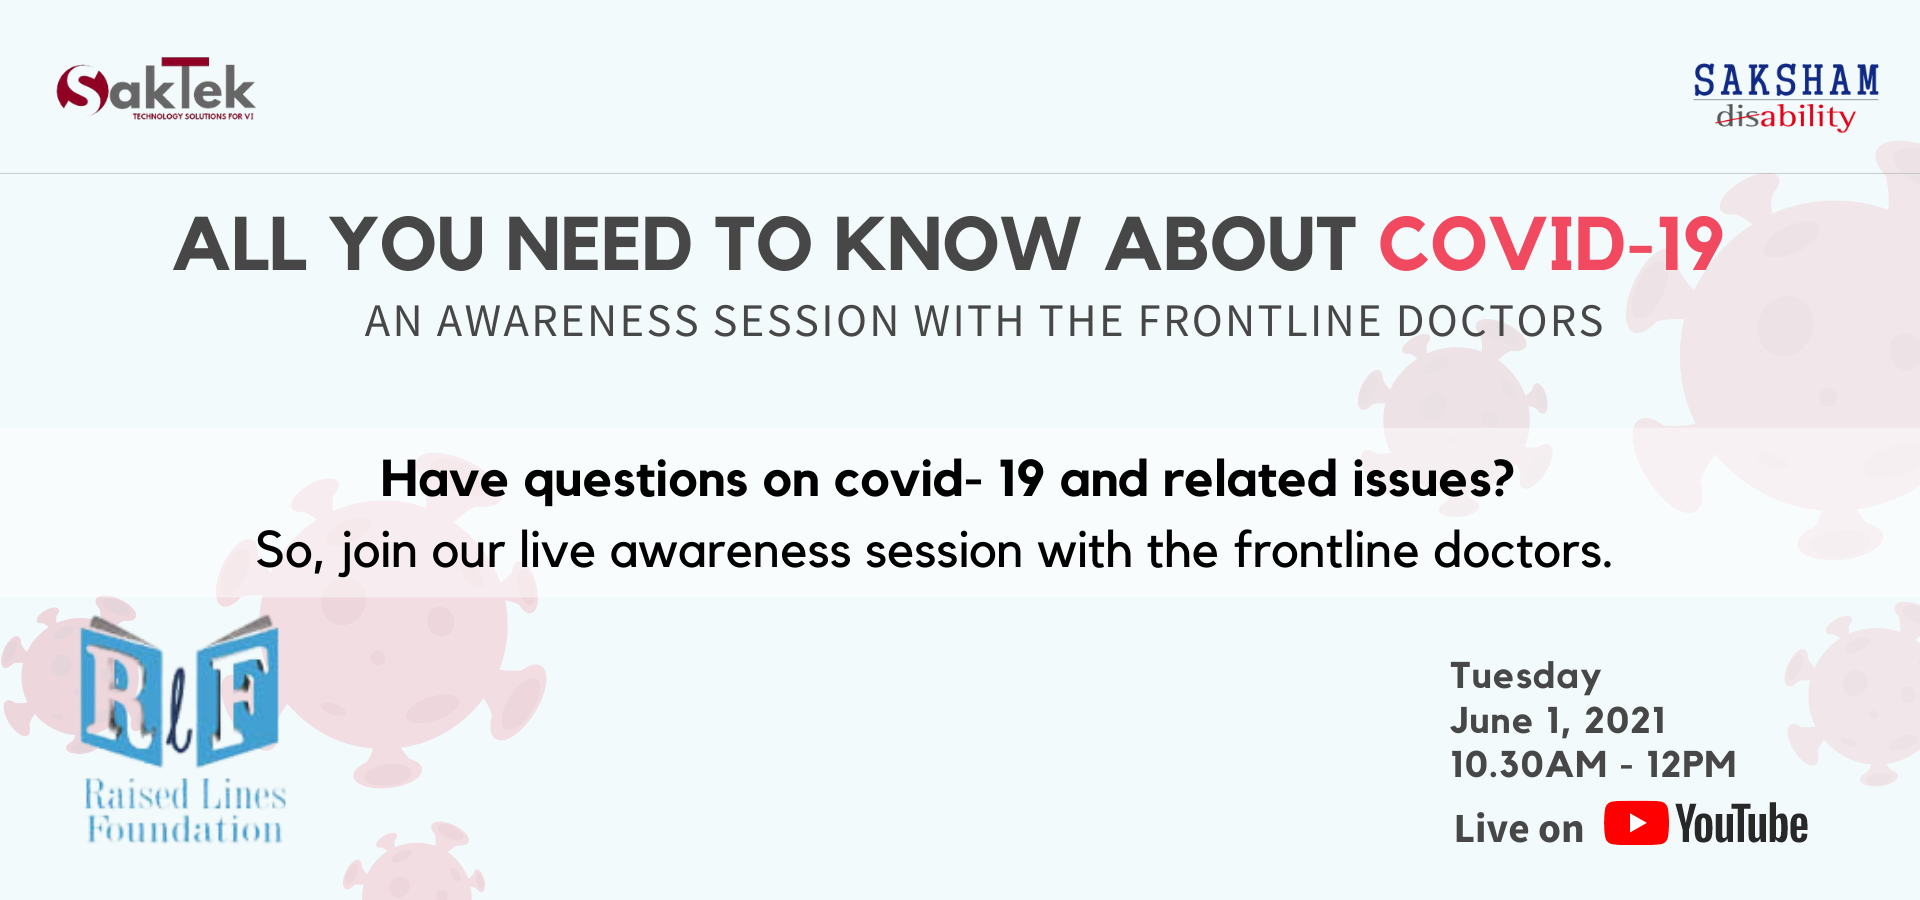 The text on the post reads All you need to know about Covid-19 An awareness session with the frontline doctors  Have too many questions about covid- 19 and related issues? So, join our live awareness session with the frontline doctors  on 1st June 2021 from 10.30 am- 12.00 pm To ask your question, please fill the above google form.